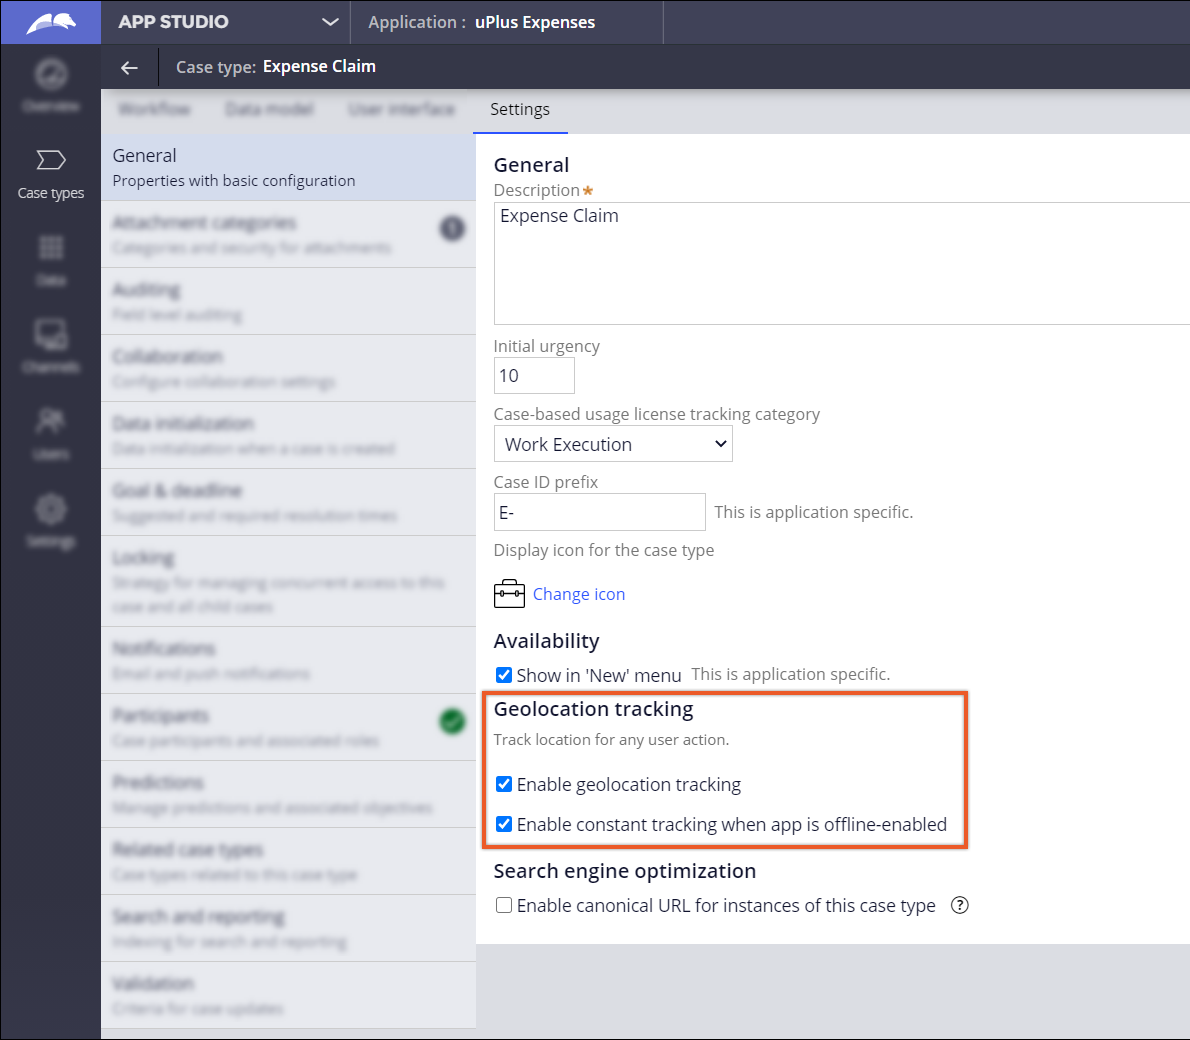 The image shows the configuration settings for enabling geolocation tracking for a               specific case type in Pega Platform.